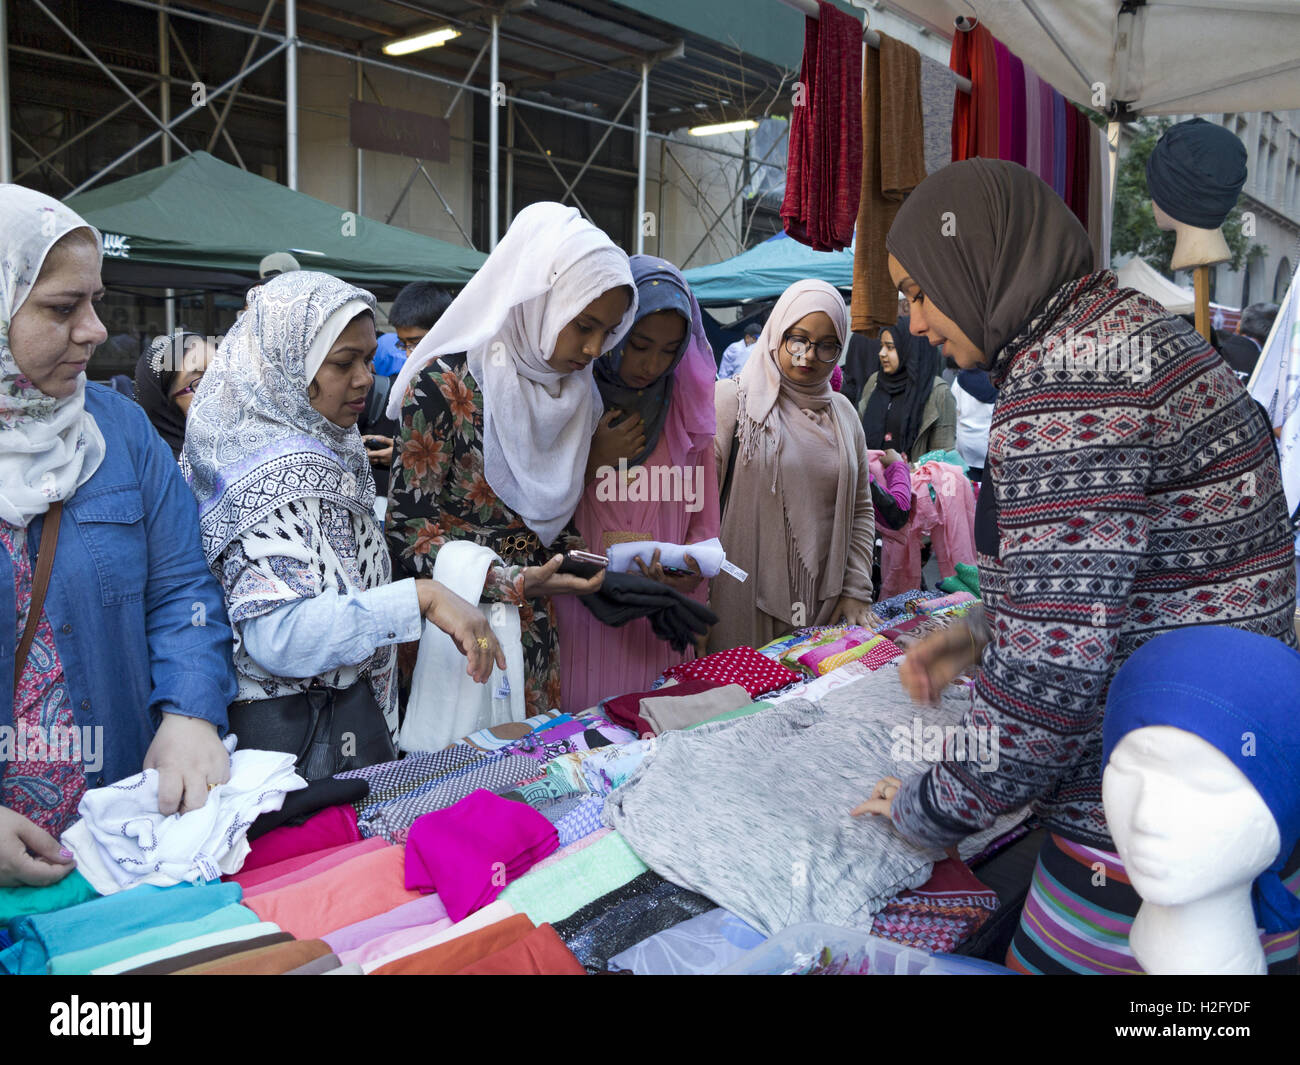 Women shopping for hijabs at street fair at American Muslim Day Parade in New York City, 2016. - Stock Image